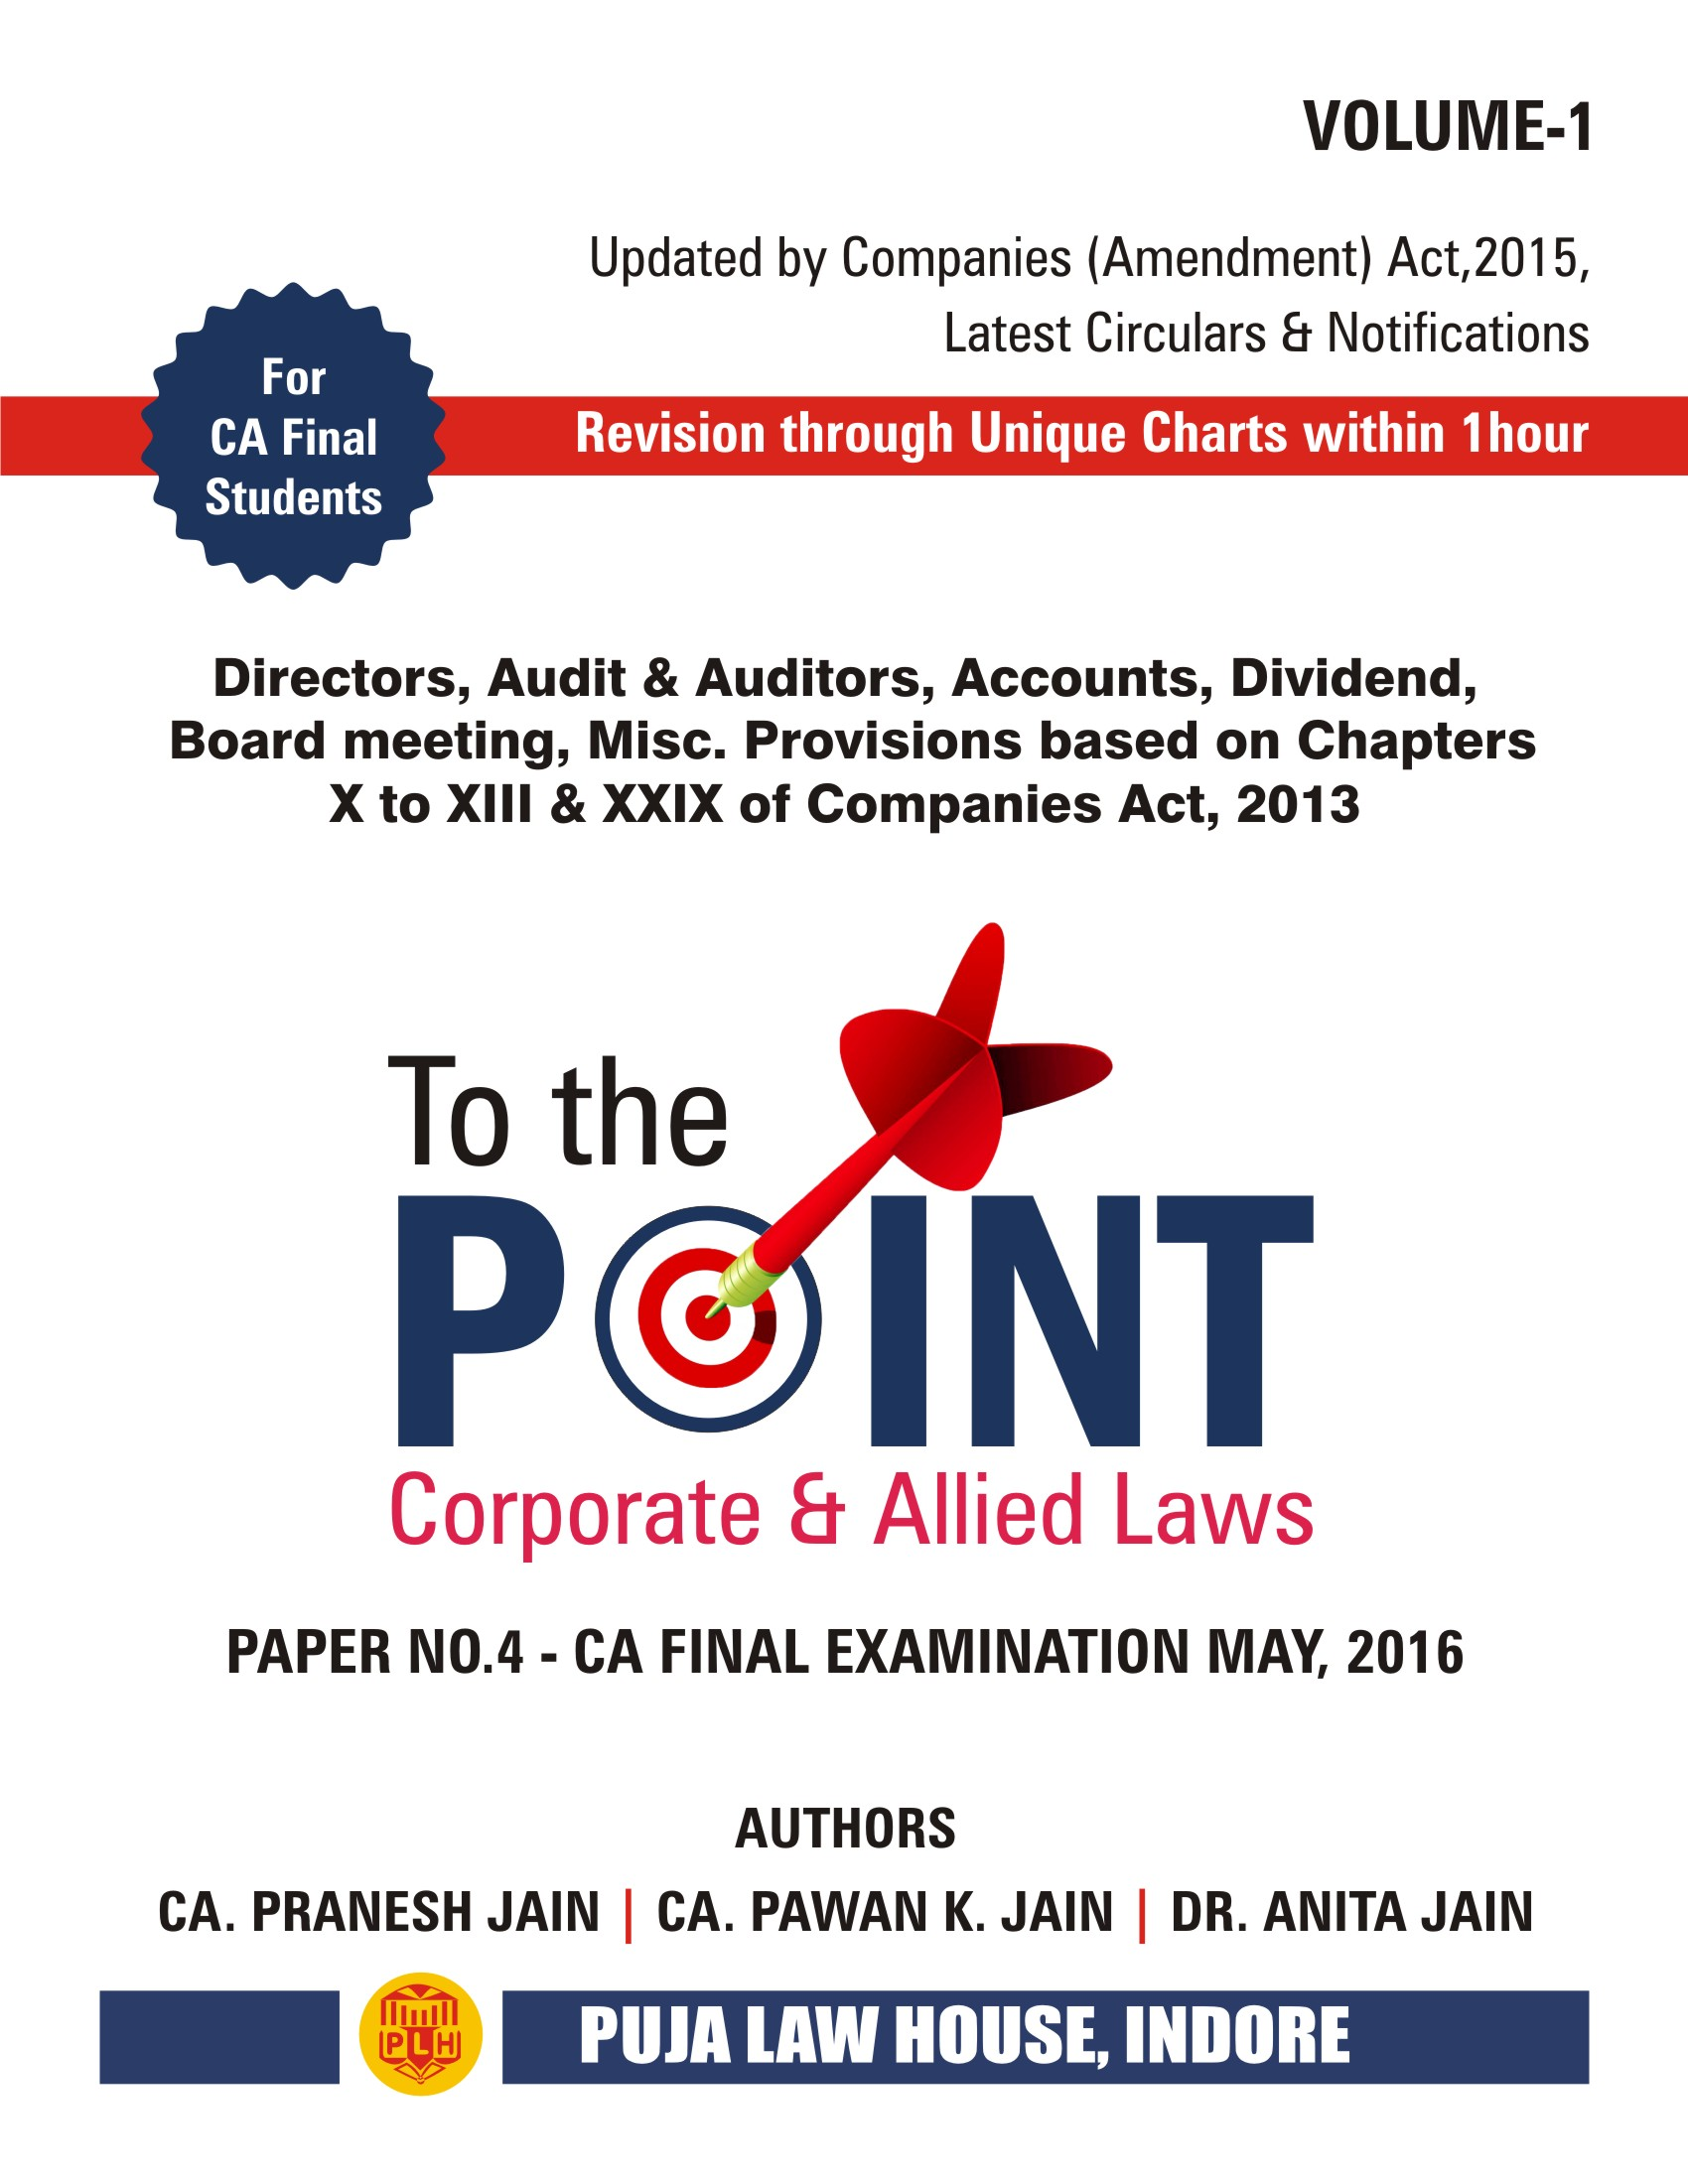 To The Point Corporate & Allied Laws